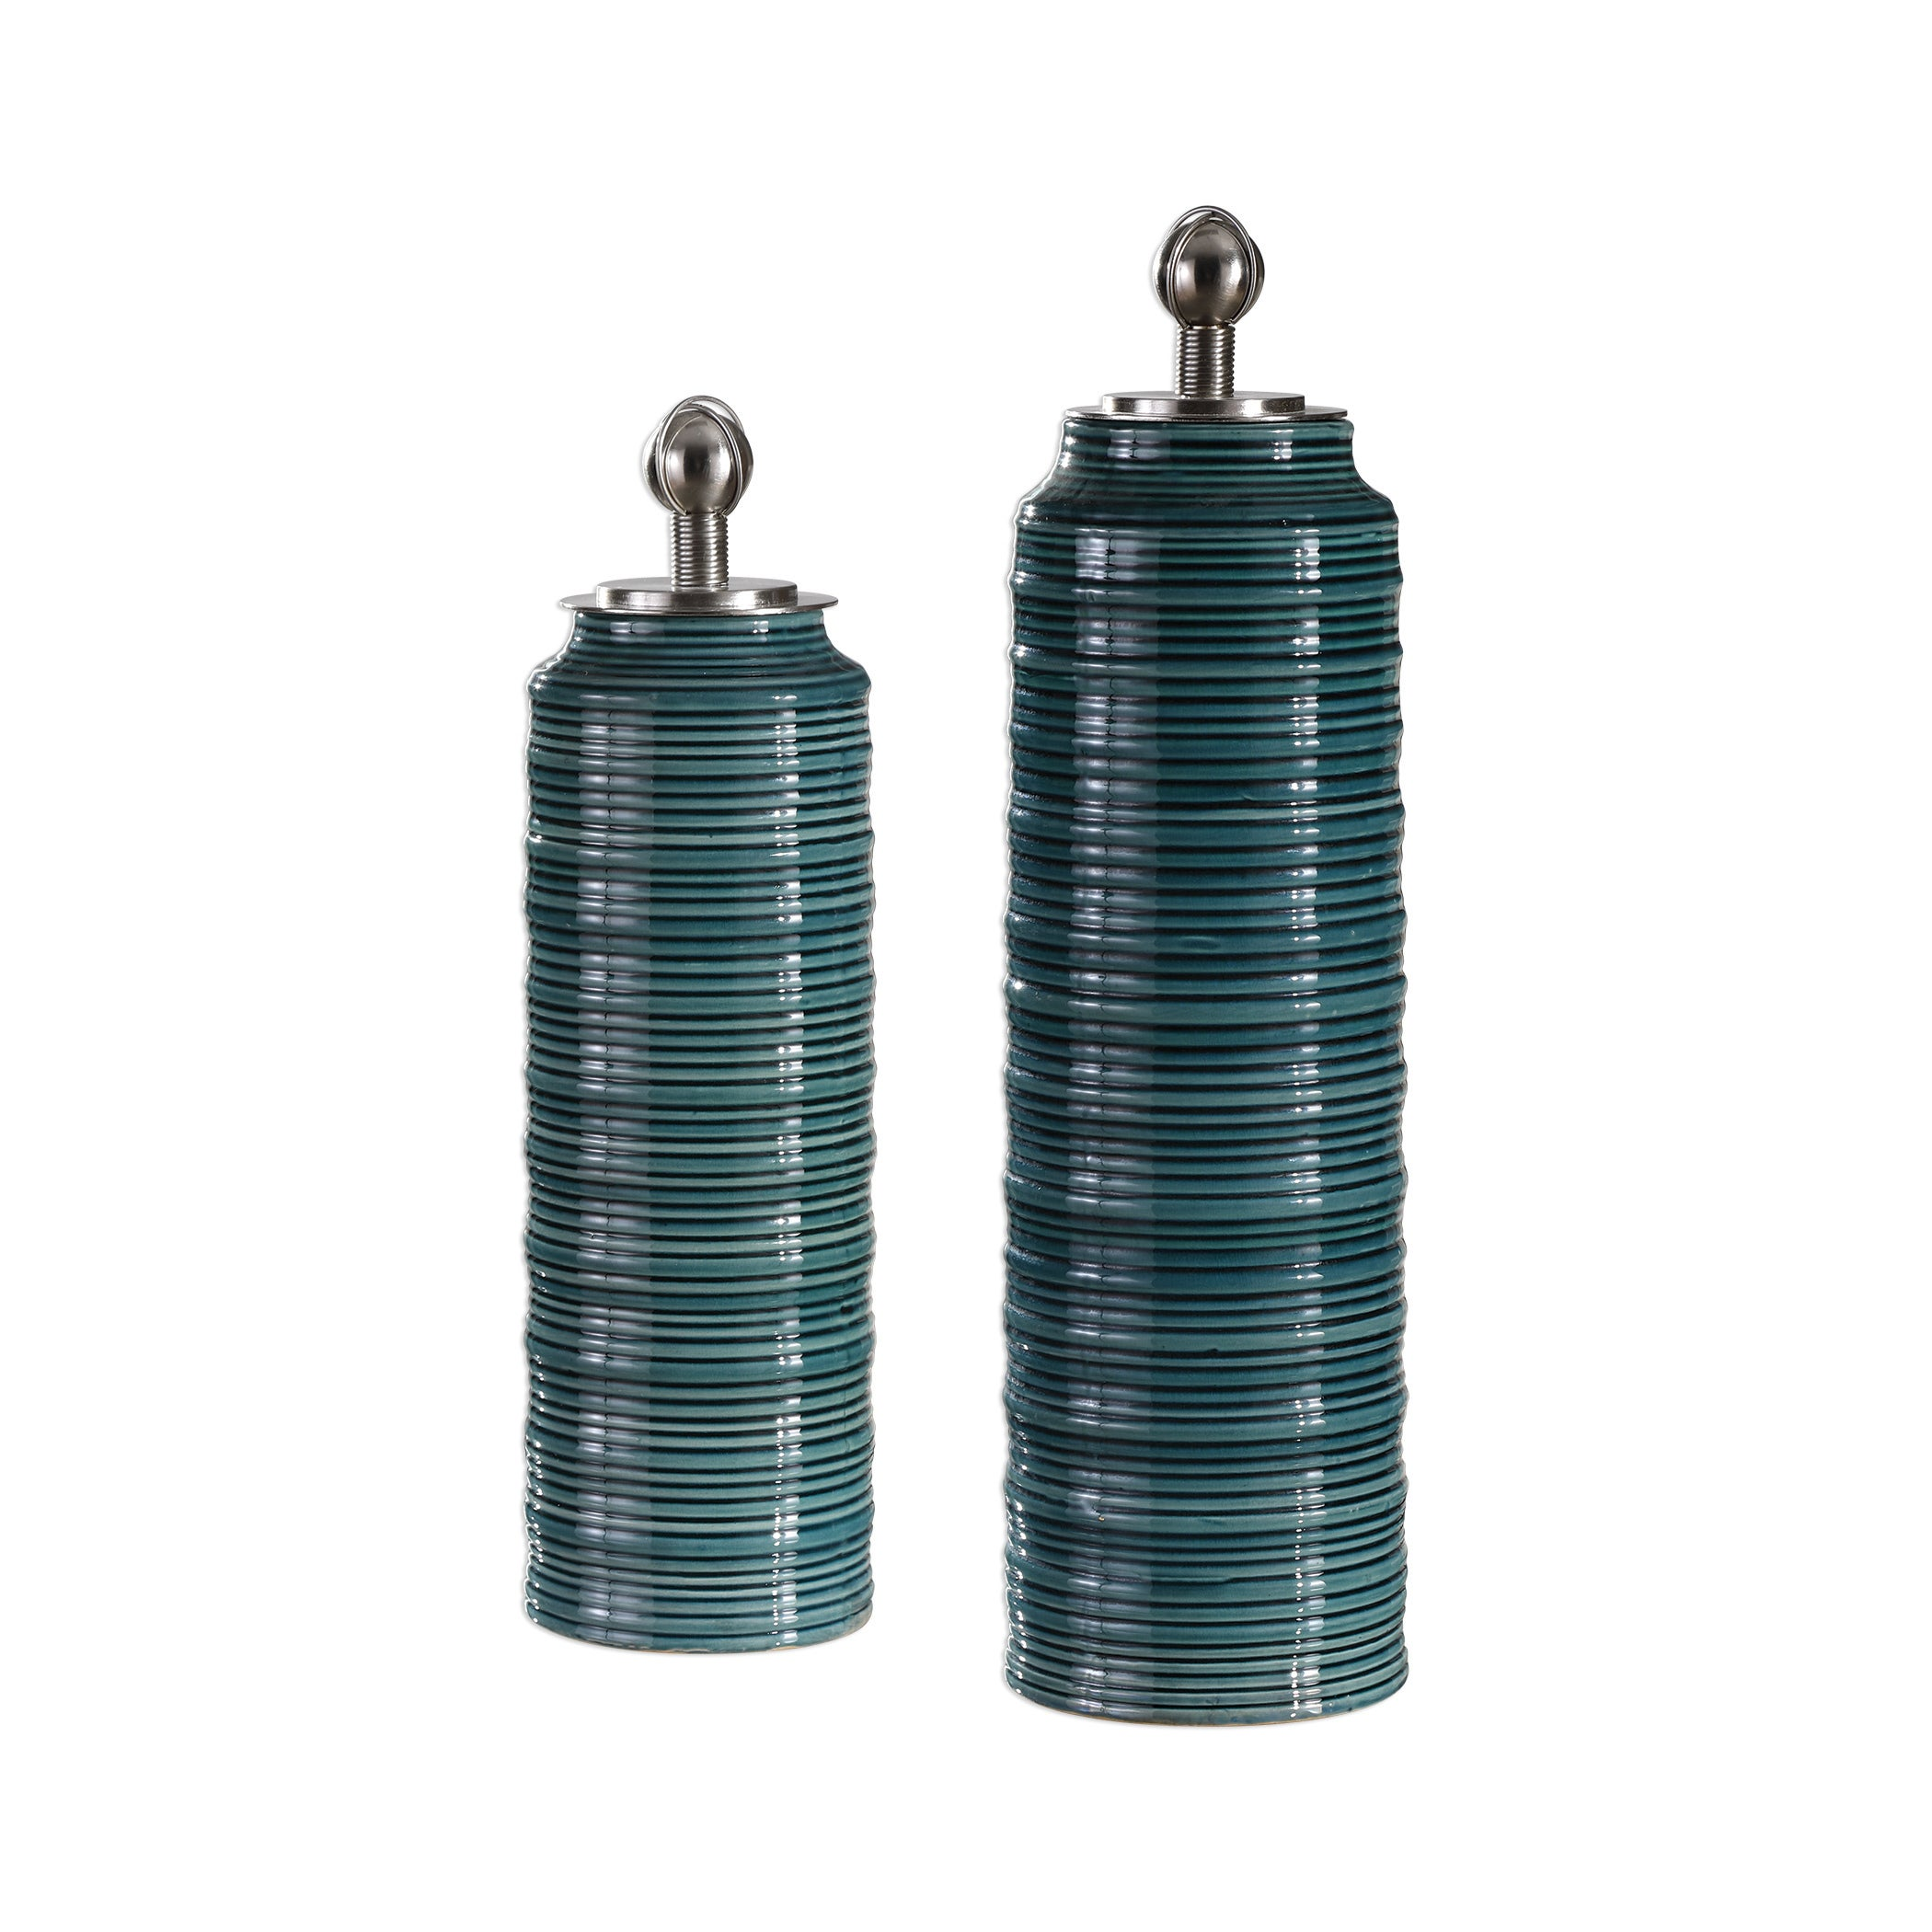 Uttermost Delane Dark Teal Canisters (Set of 2) (Green)